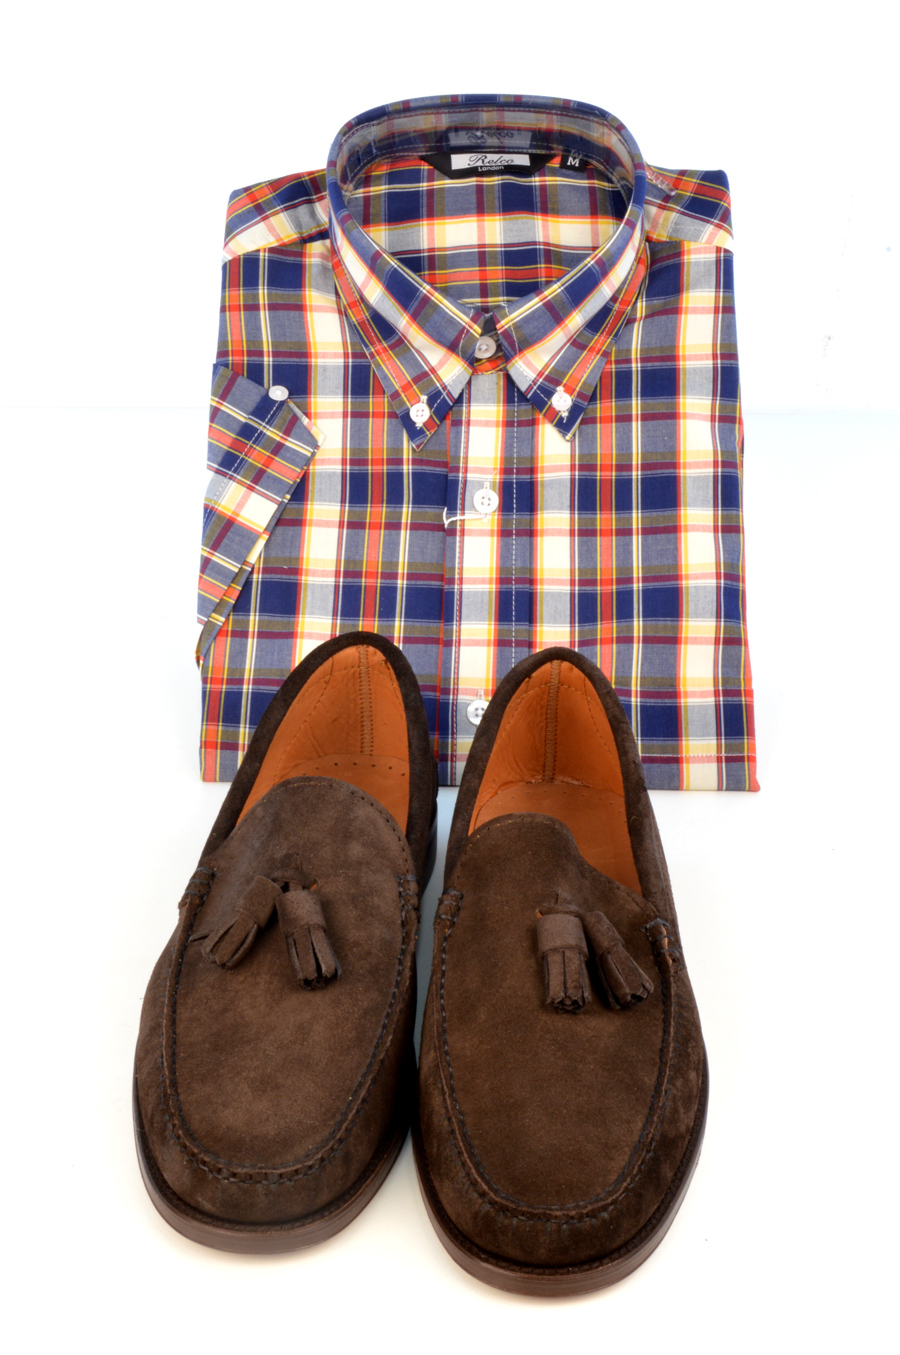 modshoes-suede-loafers-lord-with-check-shirt